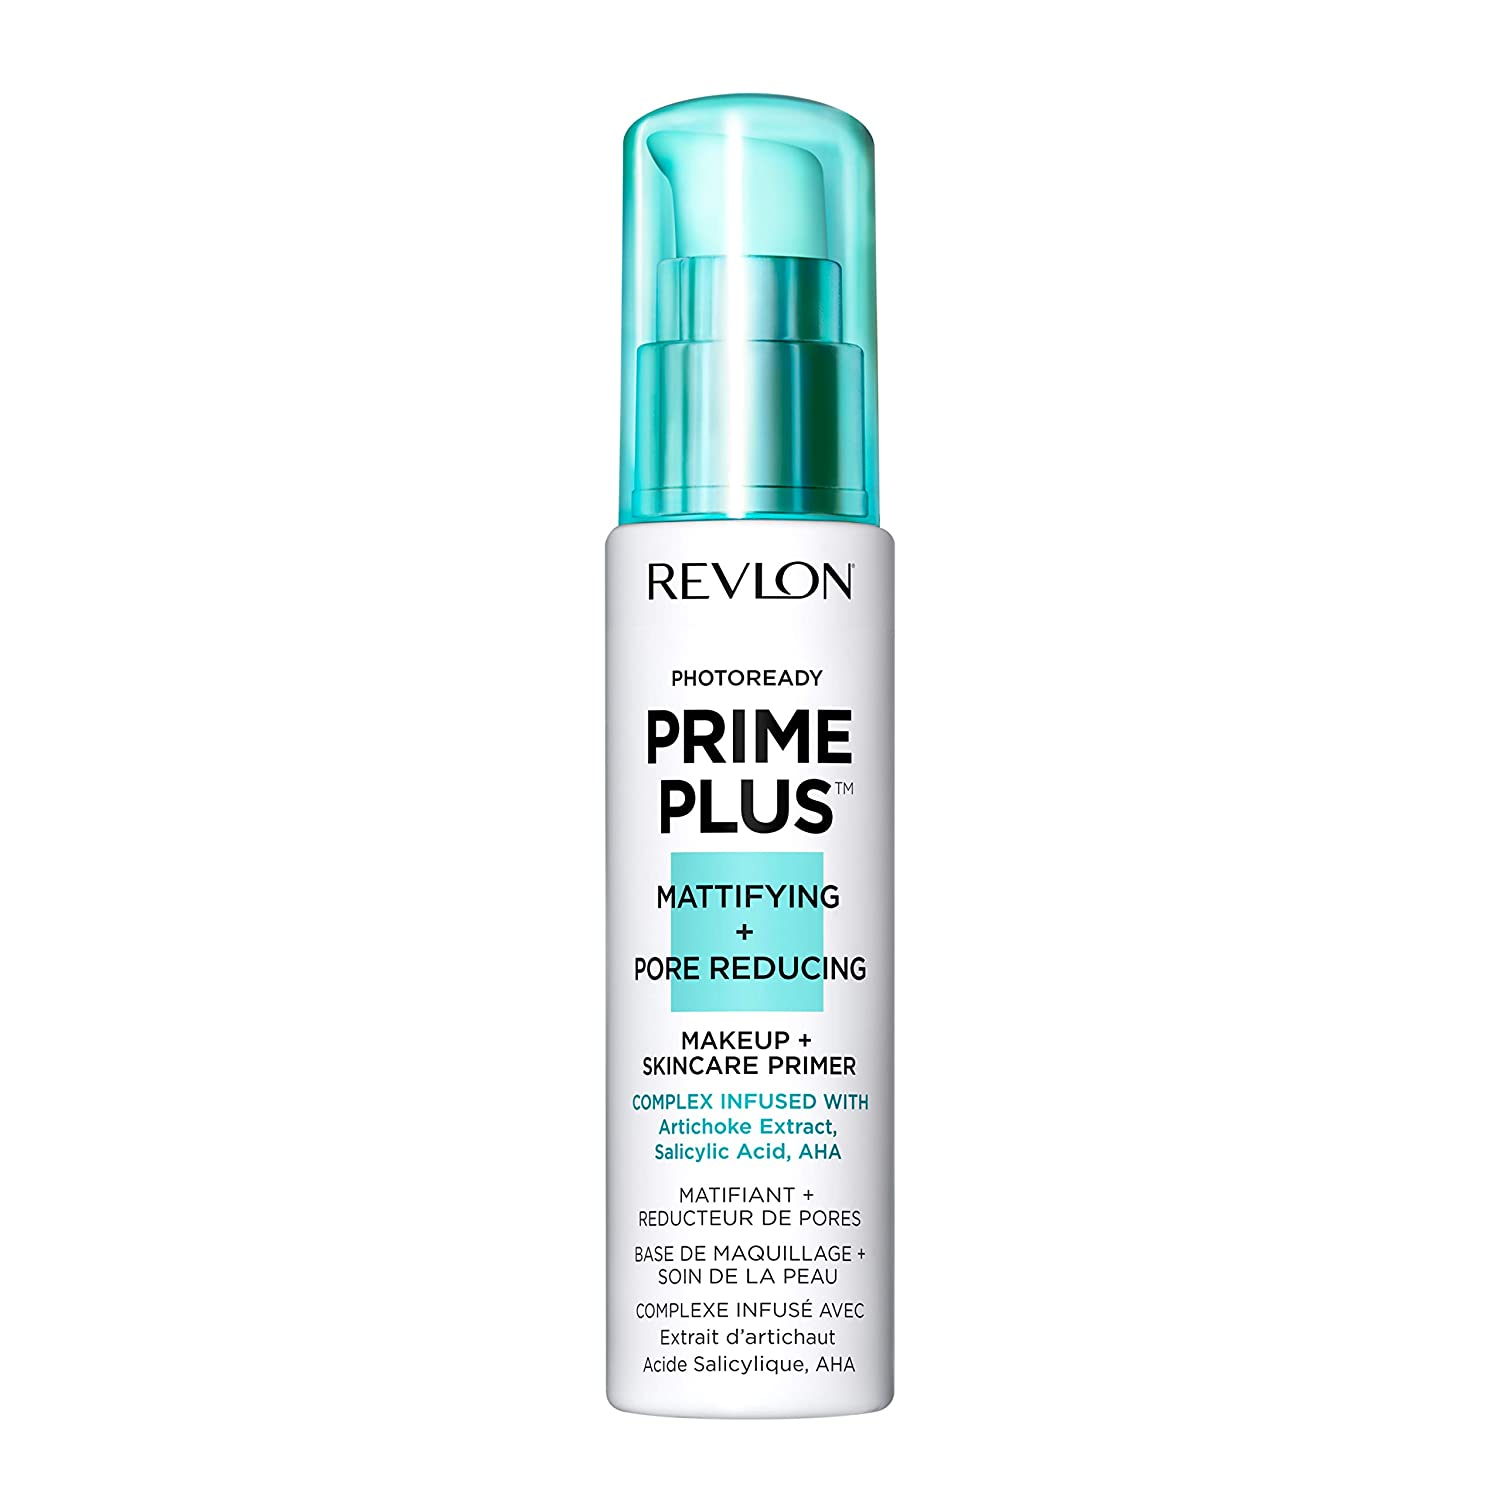 Revlon PhotoReady Prime Plus Primer, Mattifying and Pore Reducing Skincare Makeup with Salicylic Acid and AHA, 1 oz